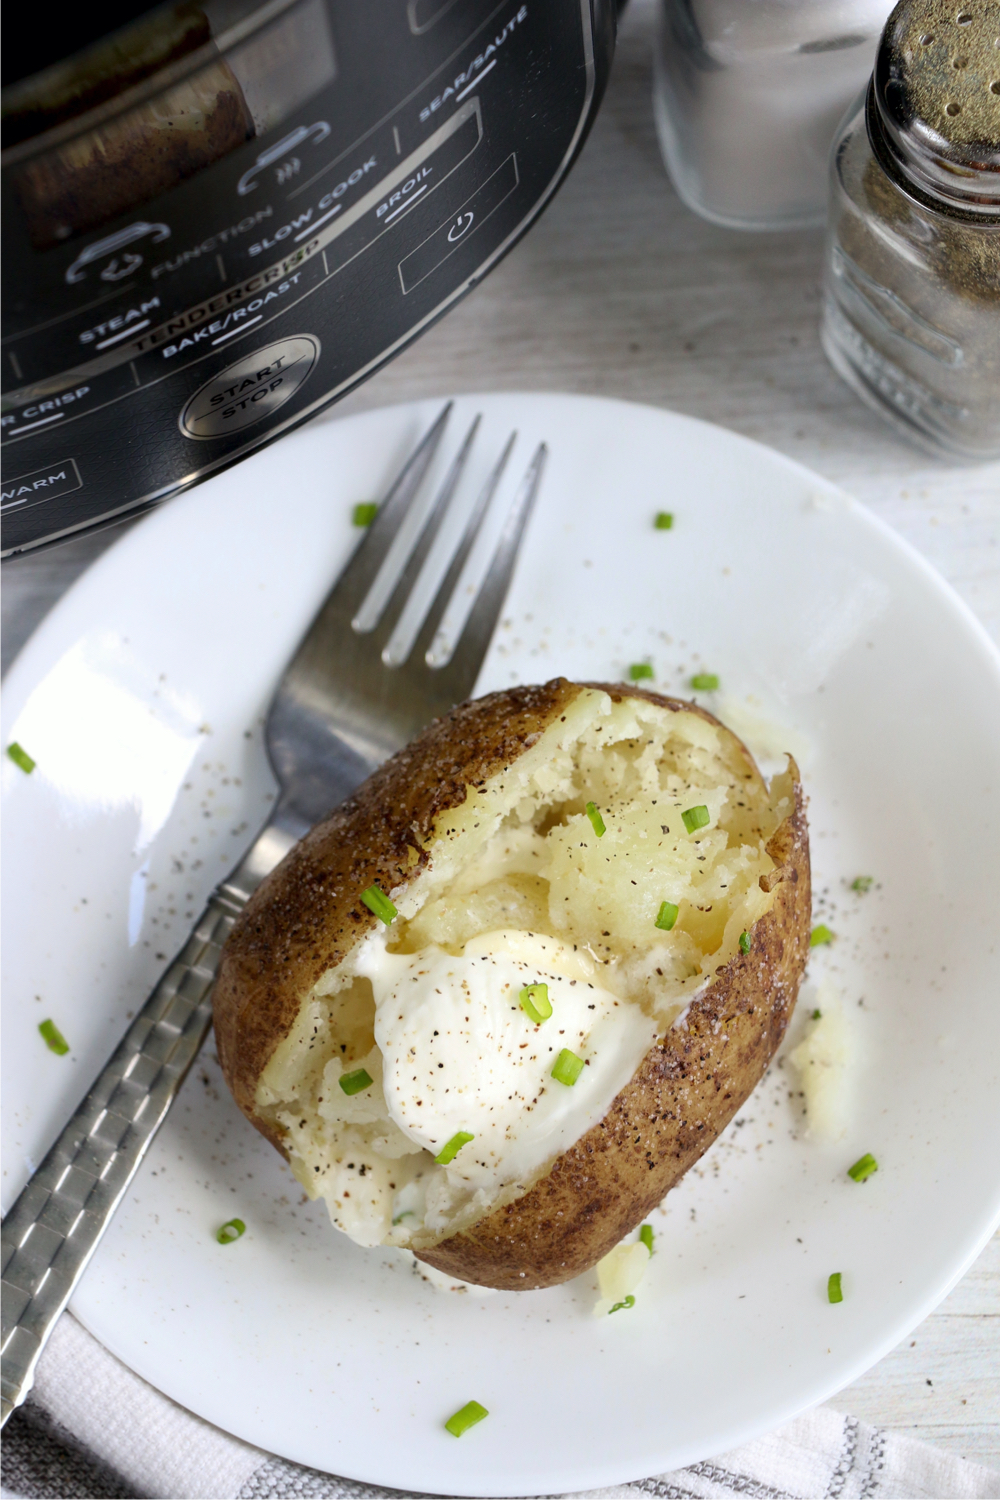 baked potato on a plate with a fork